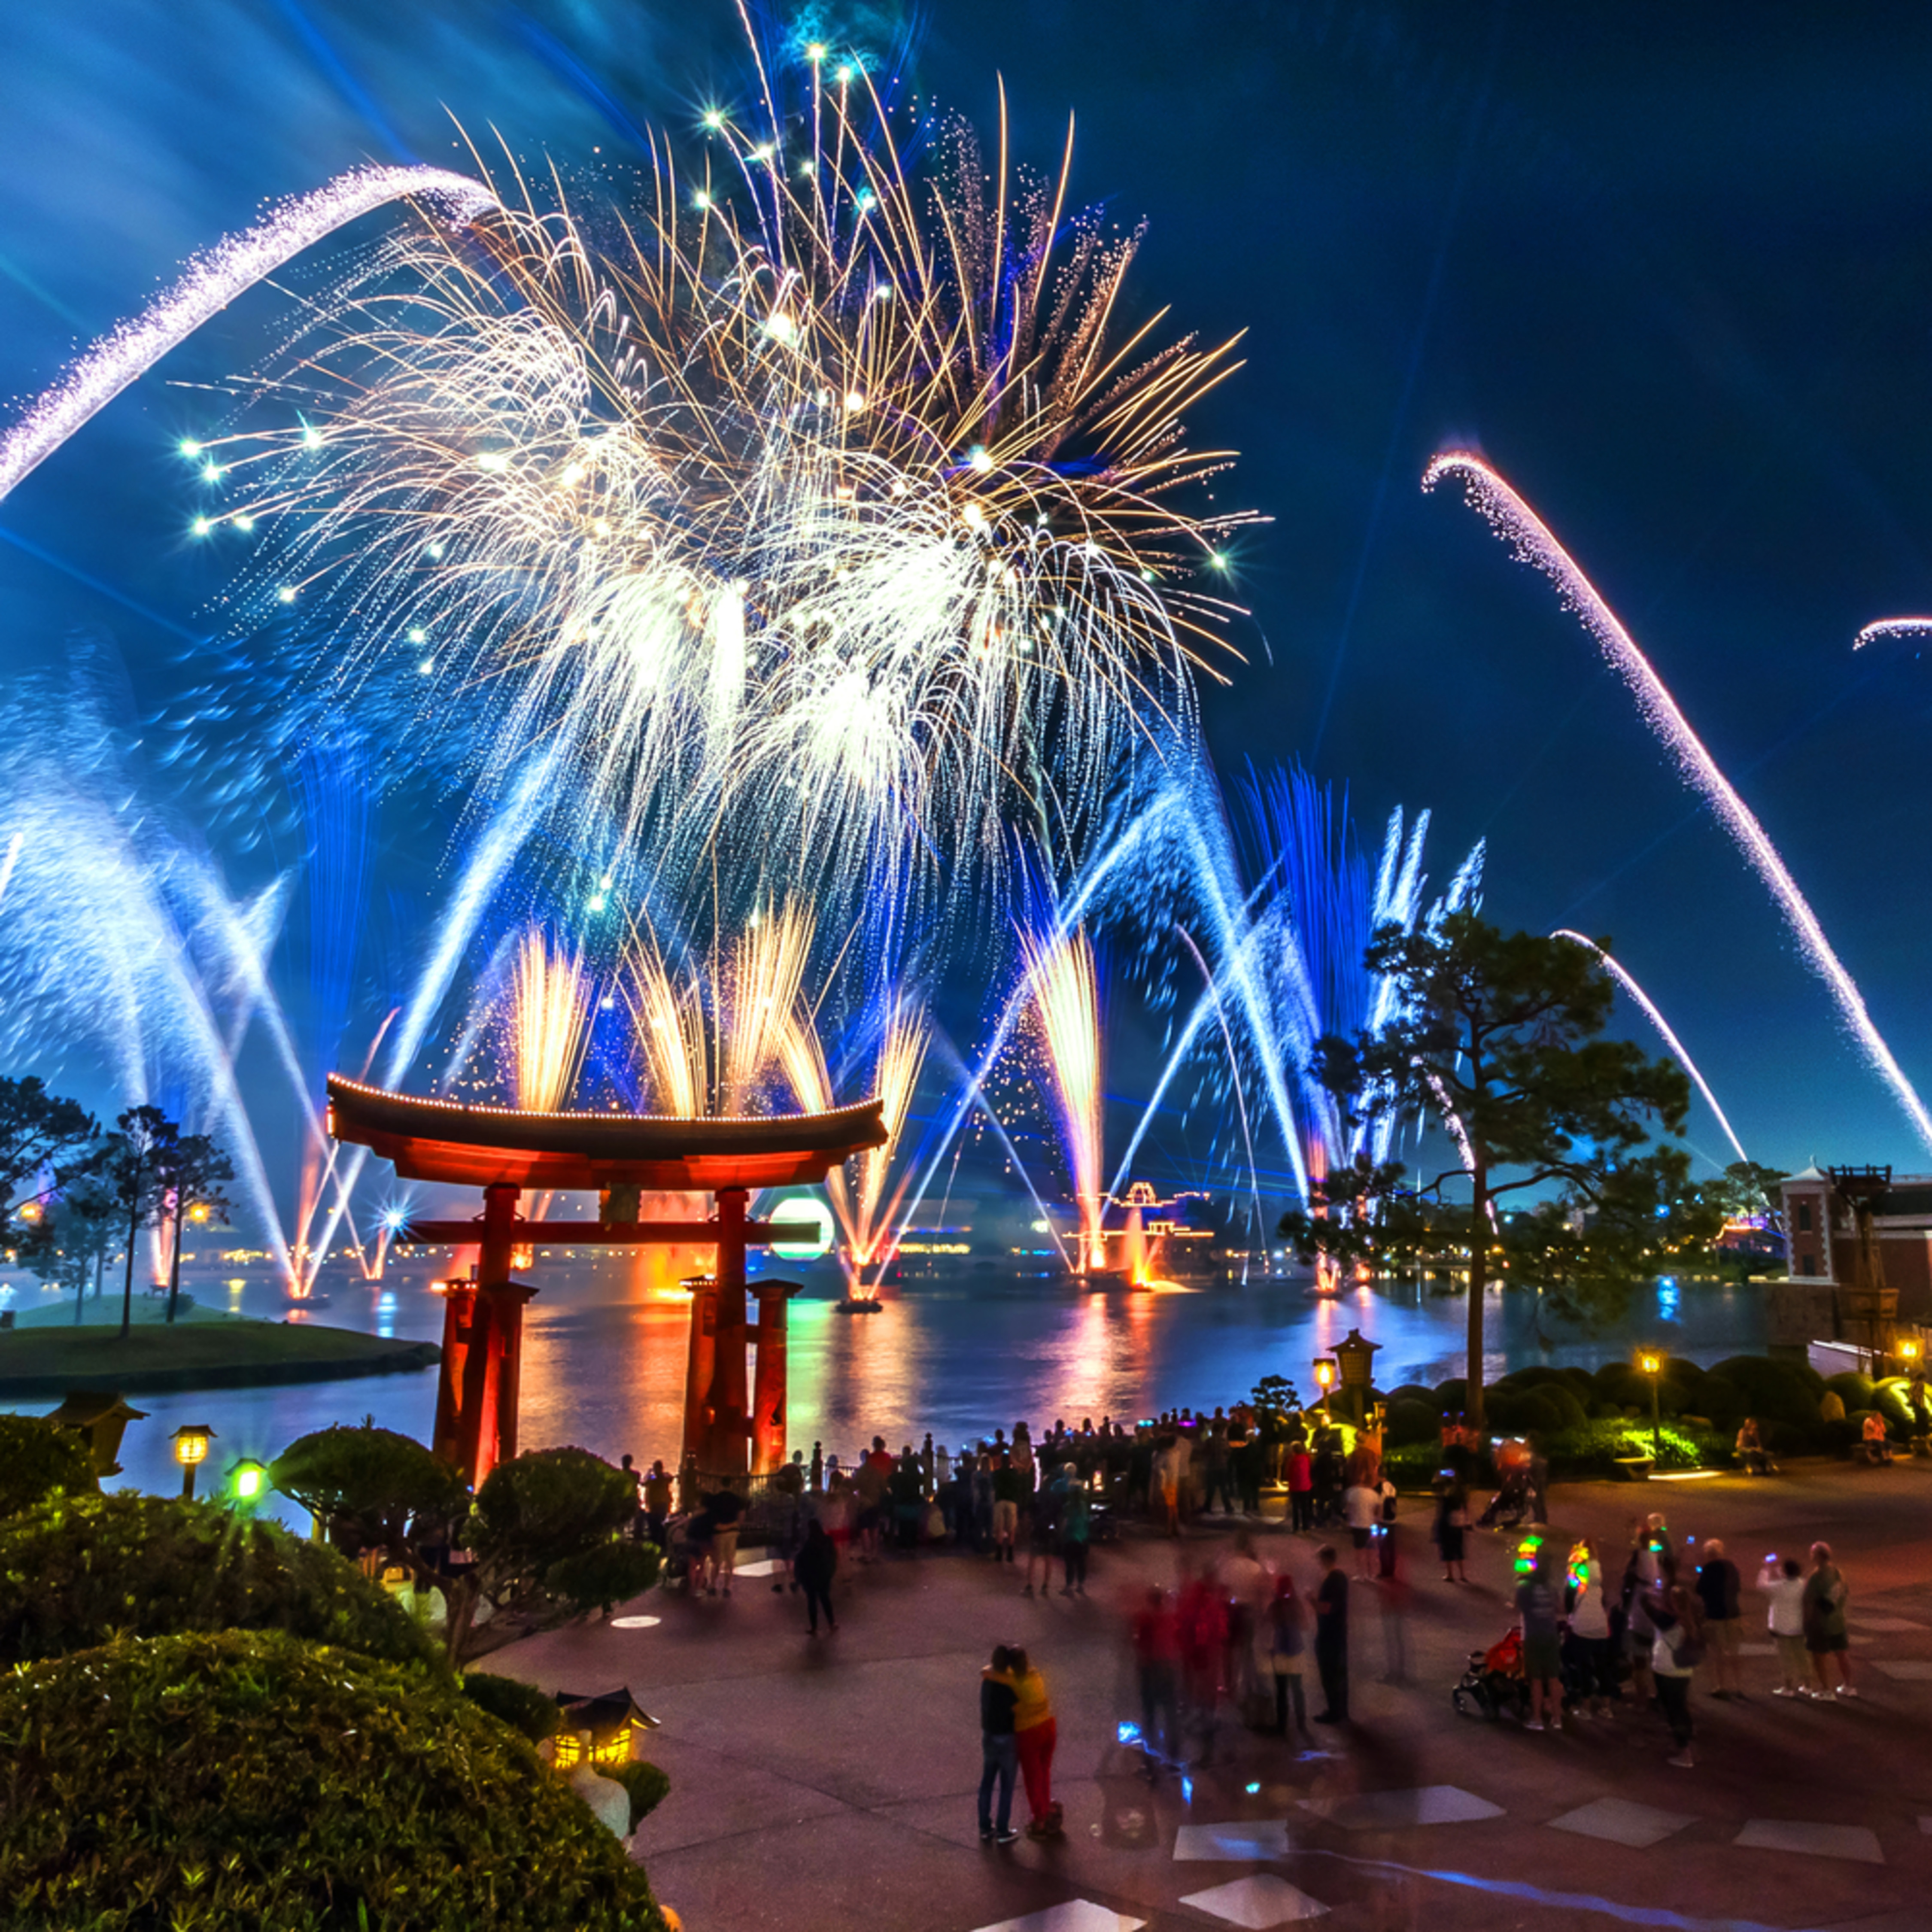 Epcot fireworks spectacular 5 dq4tlp